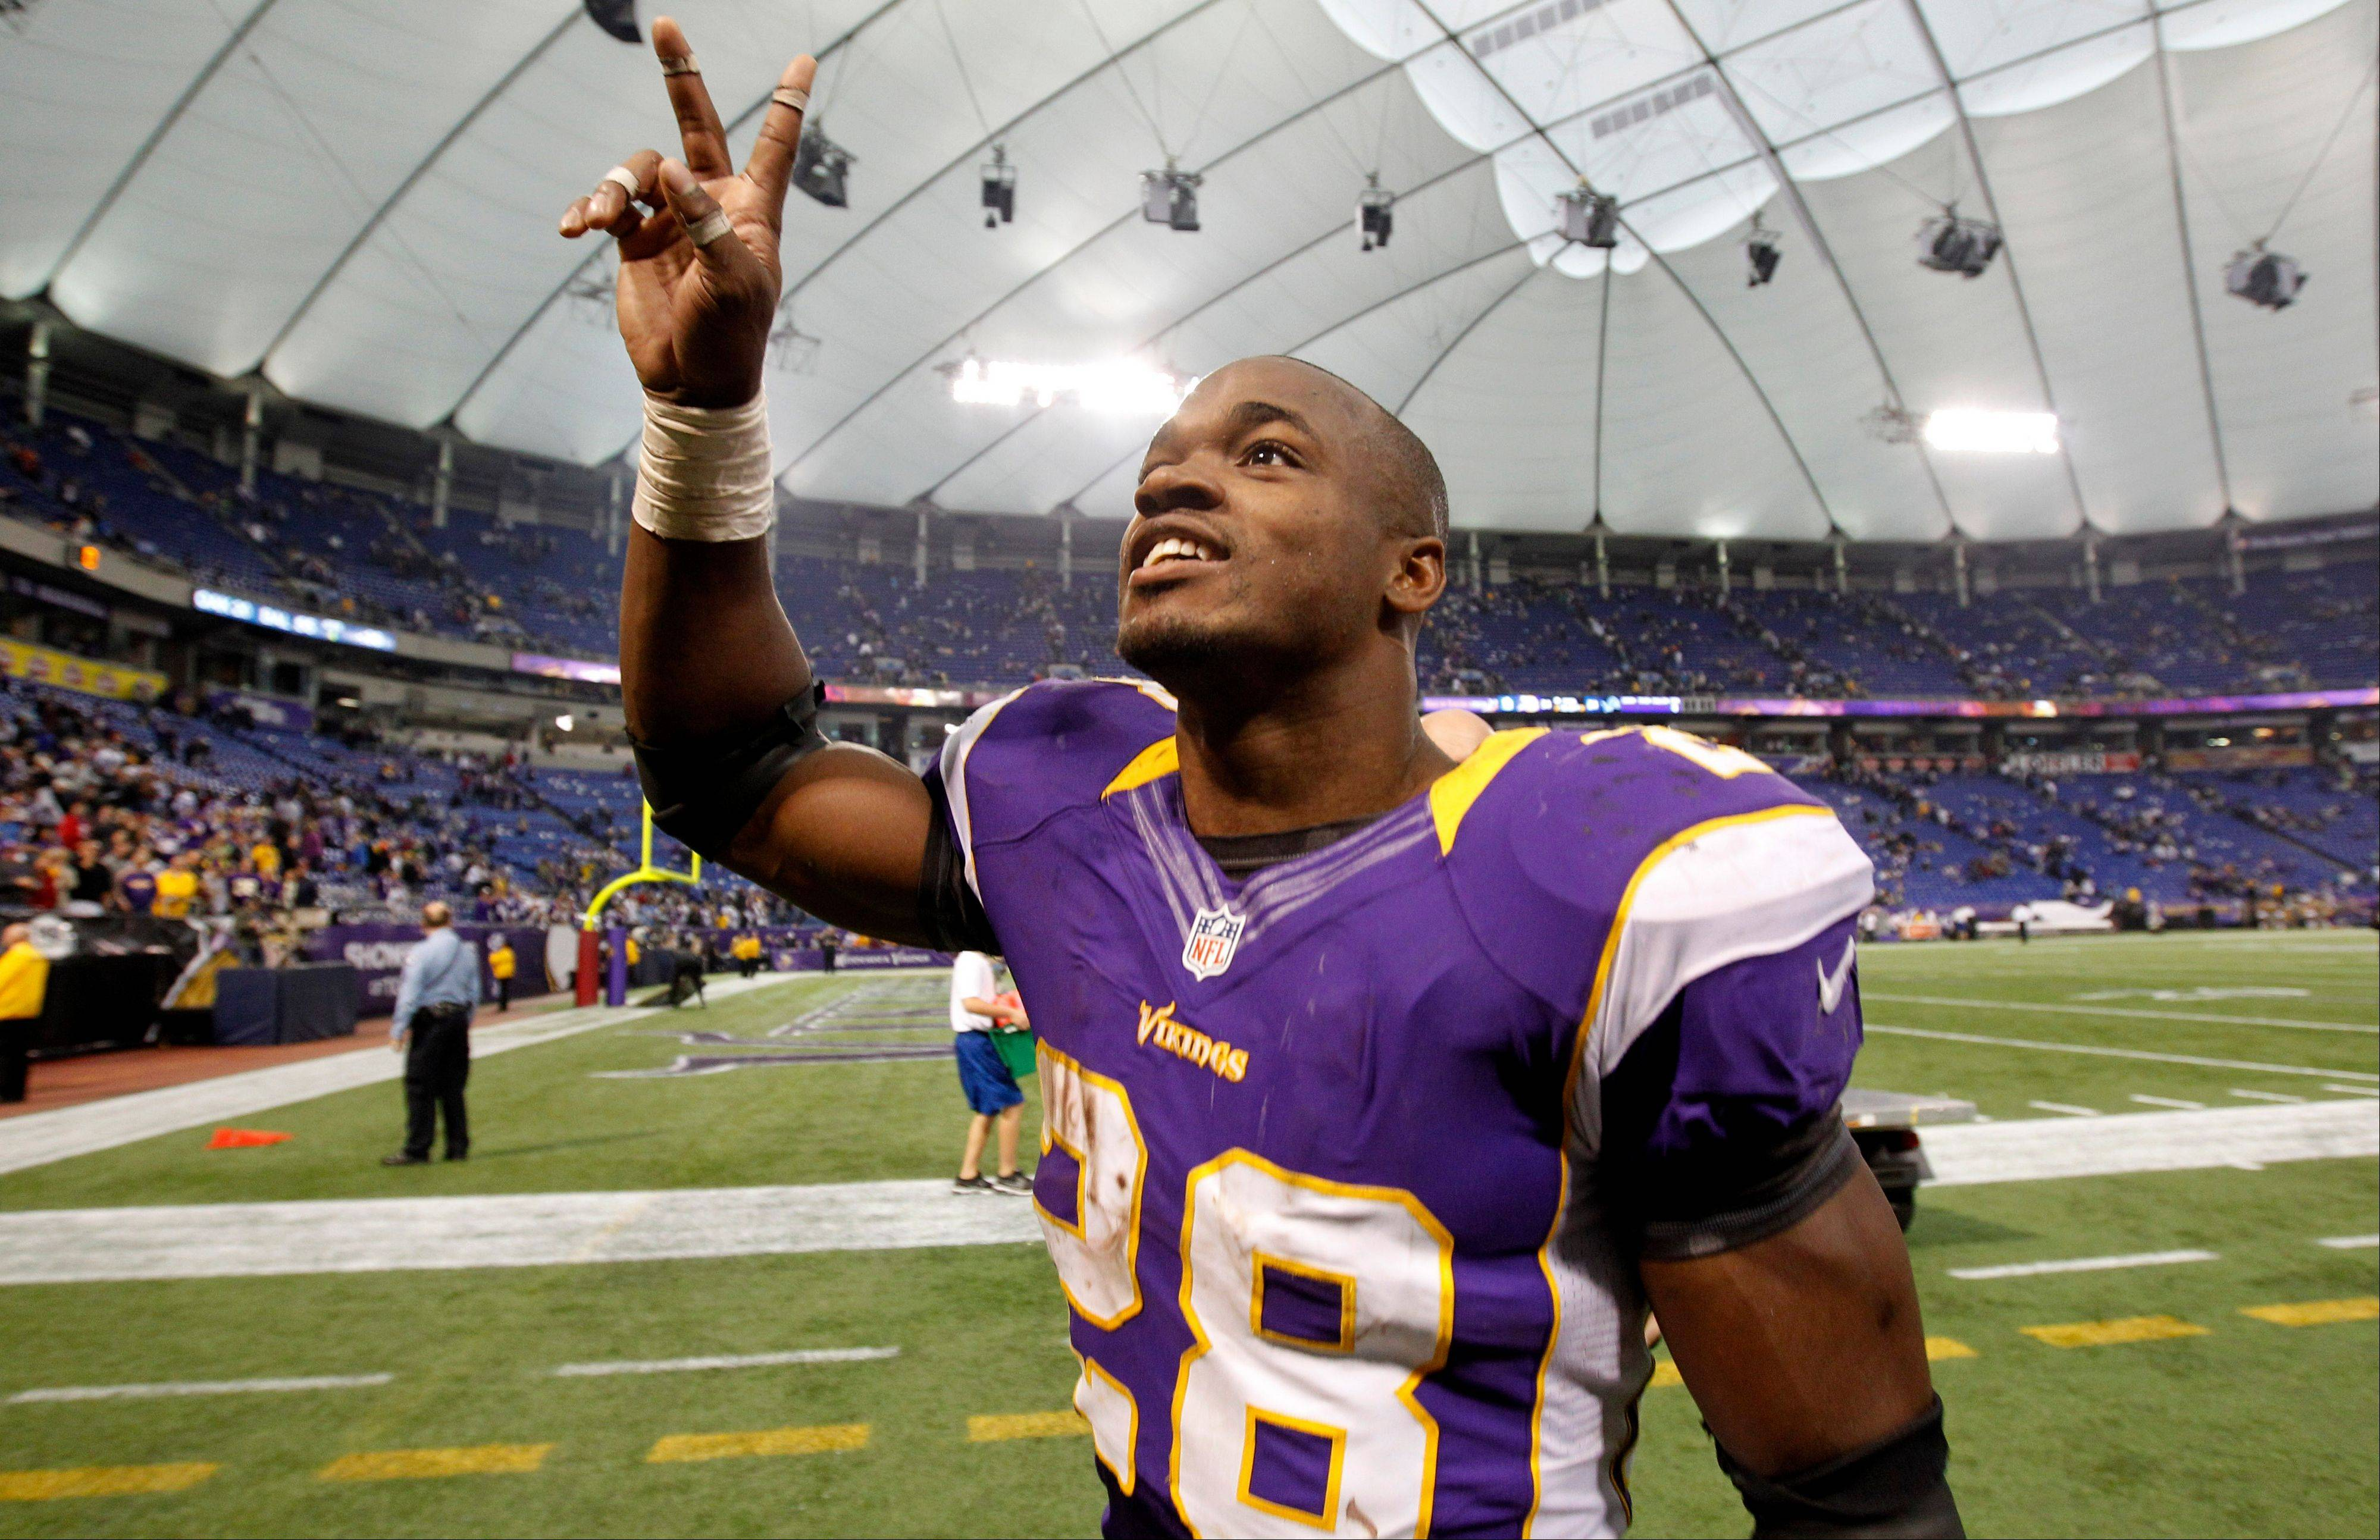 Minnesota Vikings running back Adrian Peterson celebrates after an NFL football game against the Detroit Lions, Sunday, Nov. 11, 2012, in Minneapolis. The Vikings won 34-24.